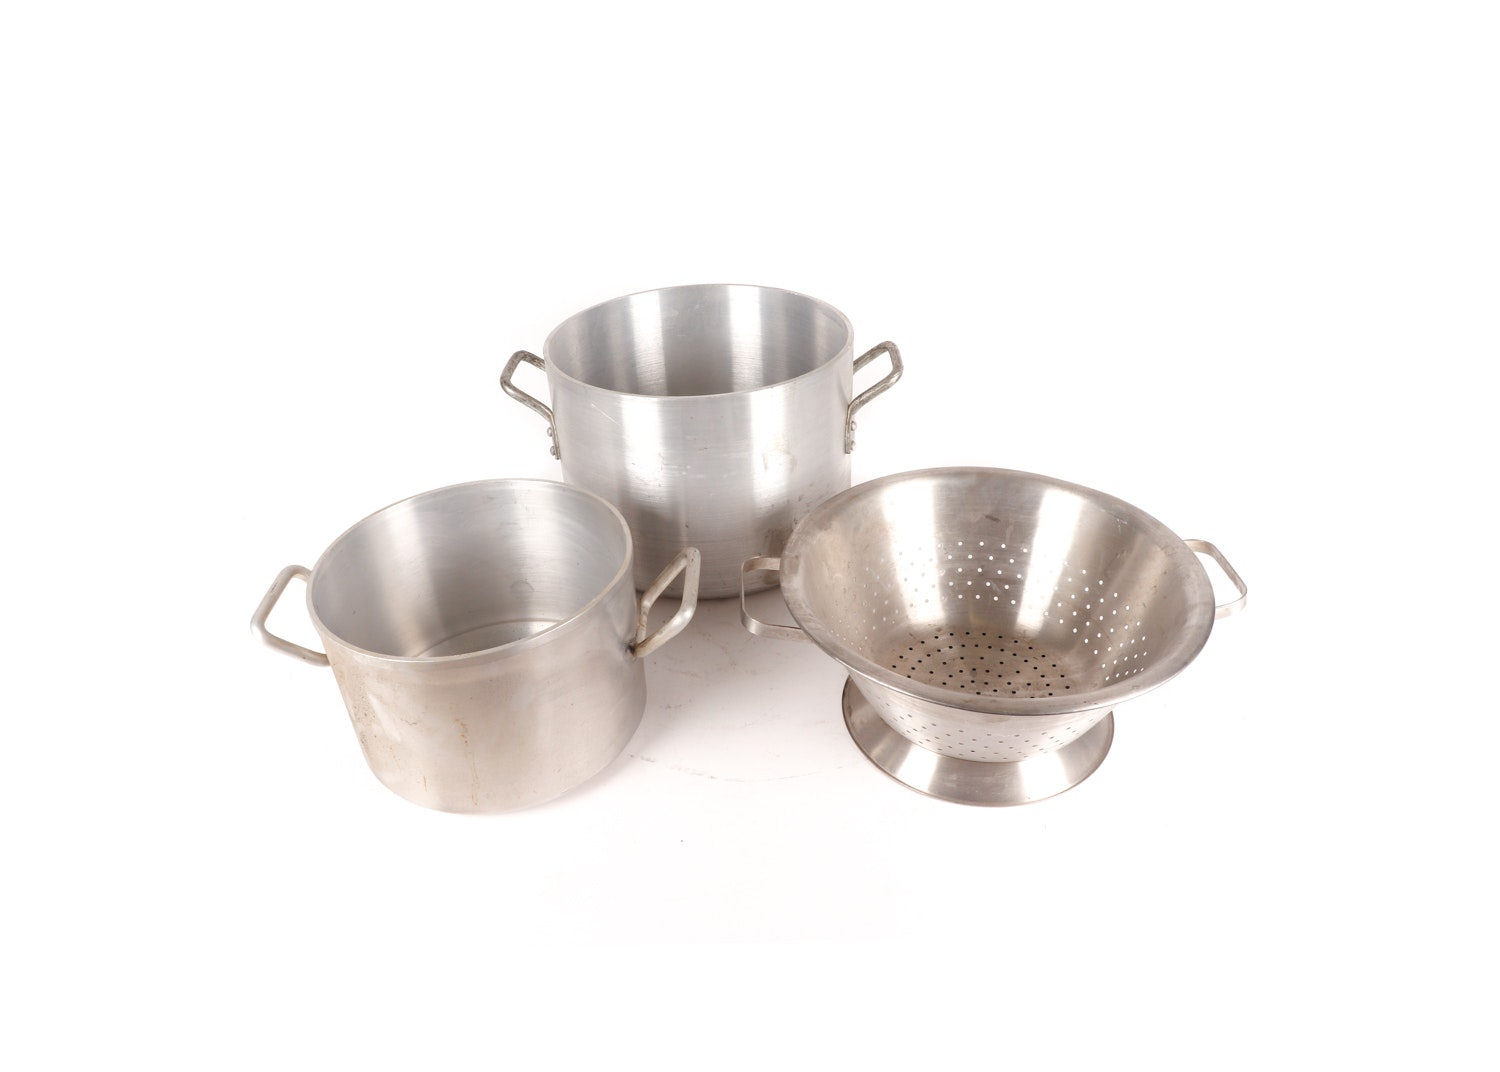 Wear-Ever and Dura-Wear Stockpots and Colander